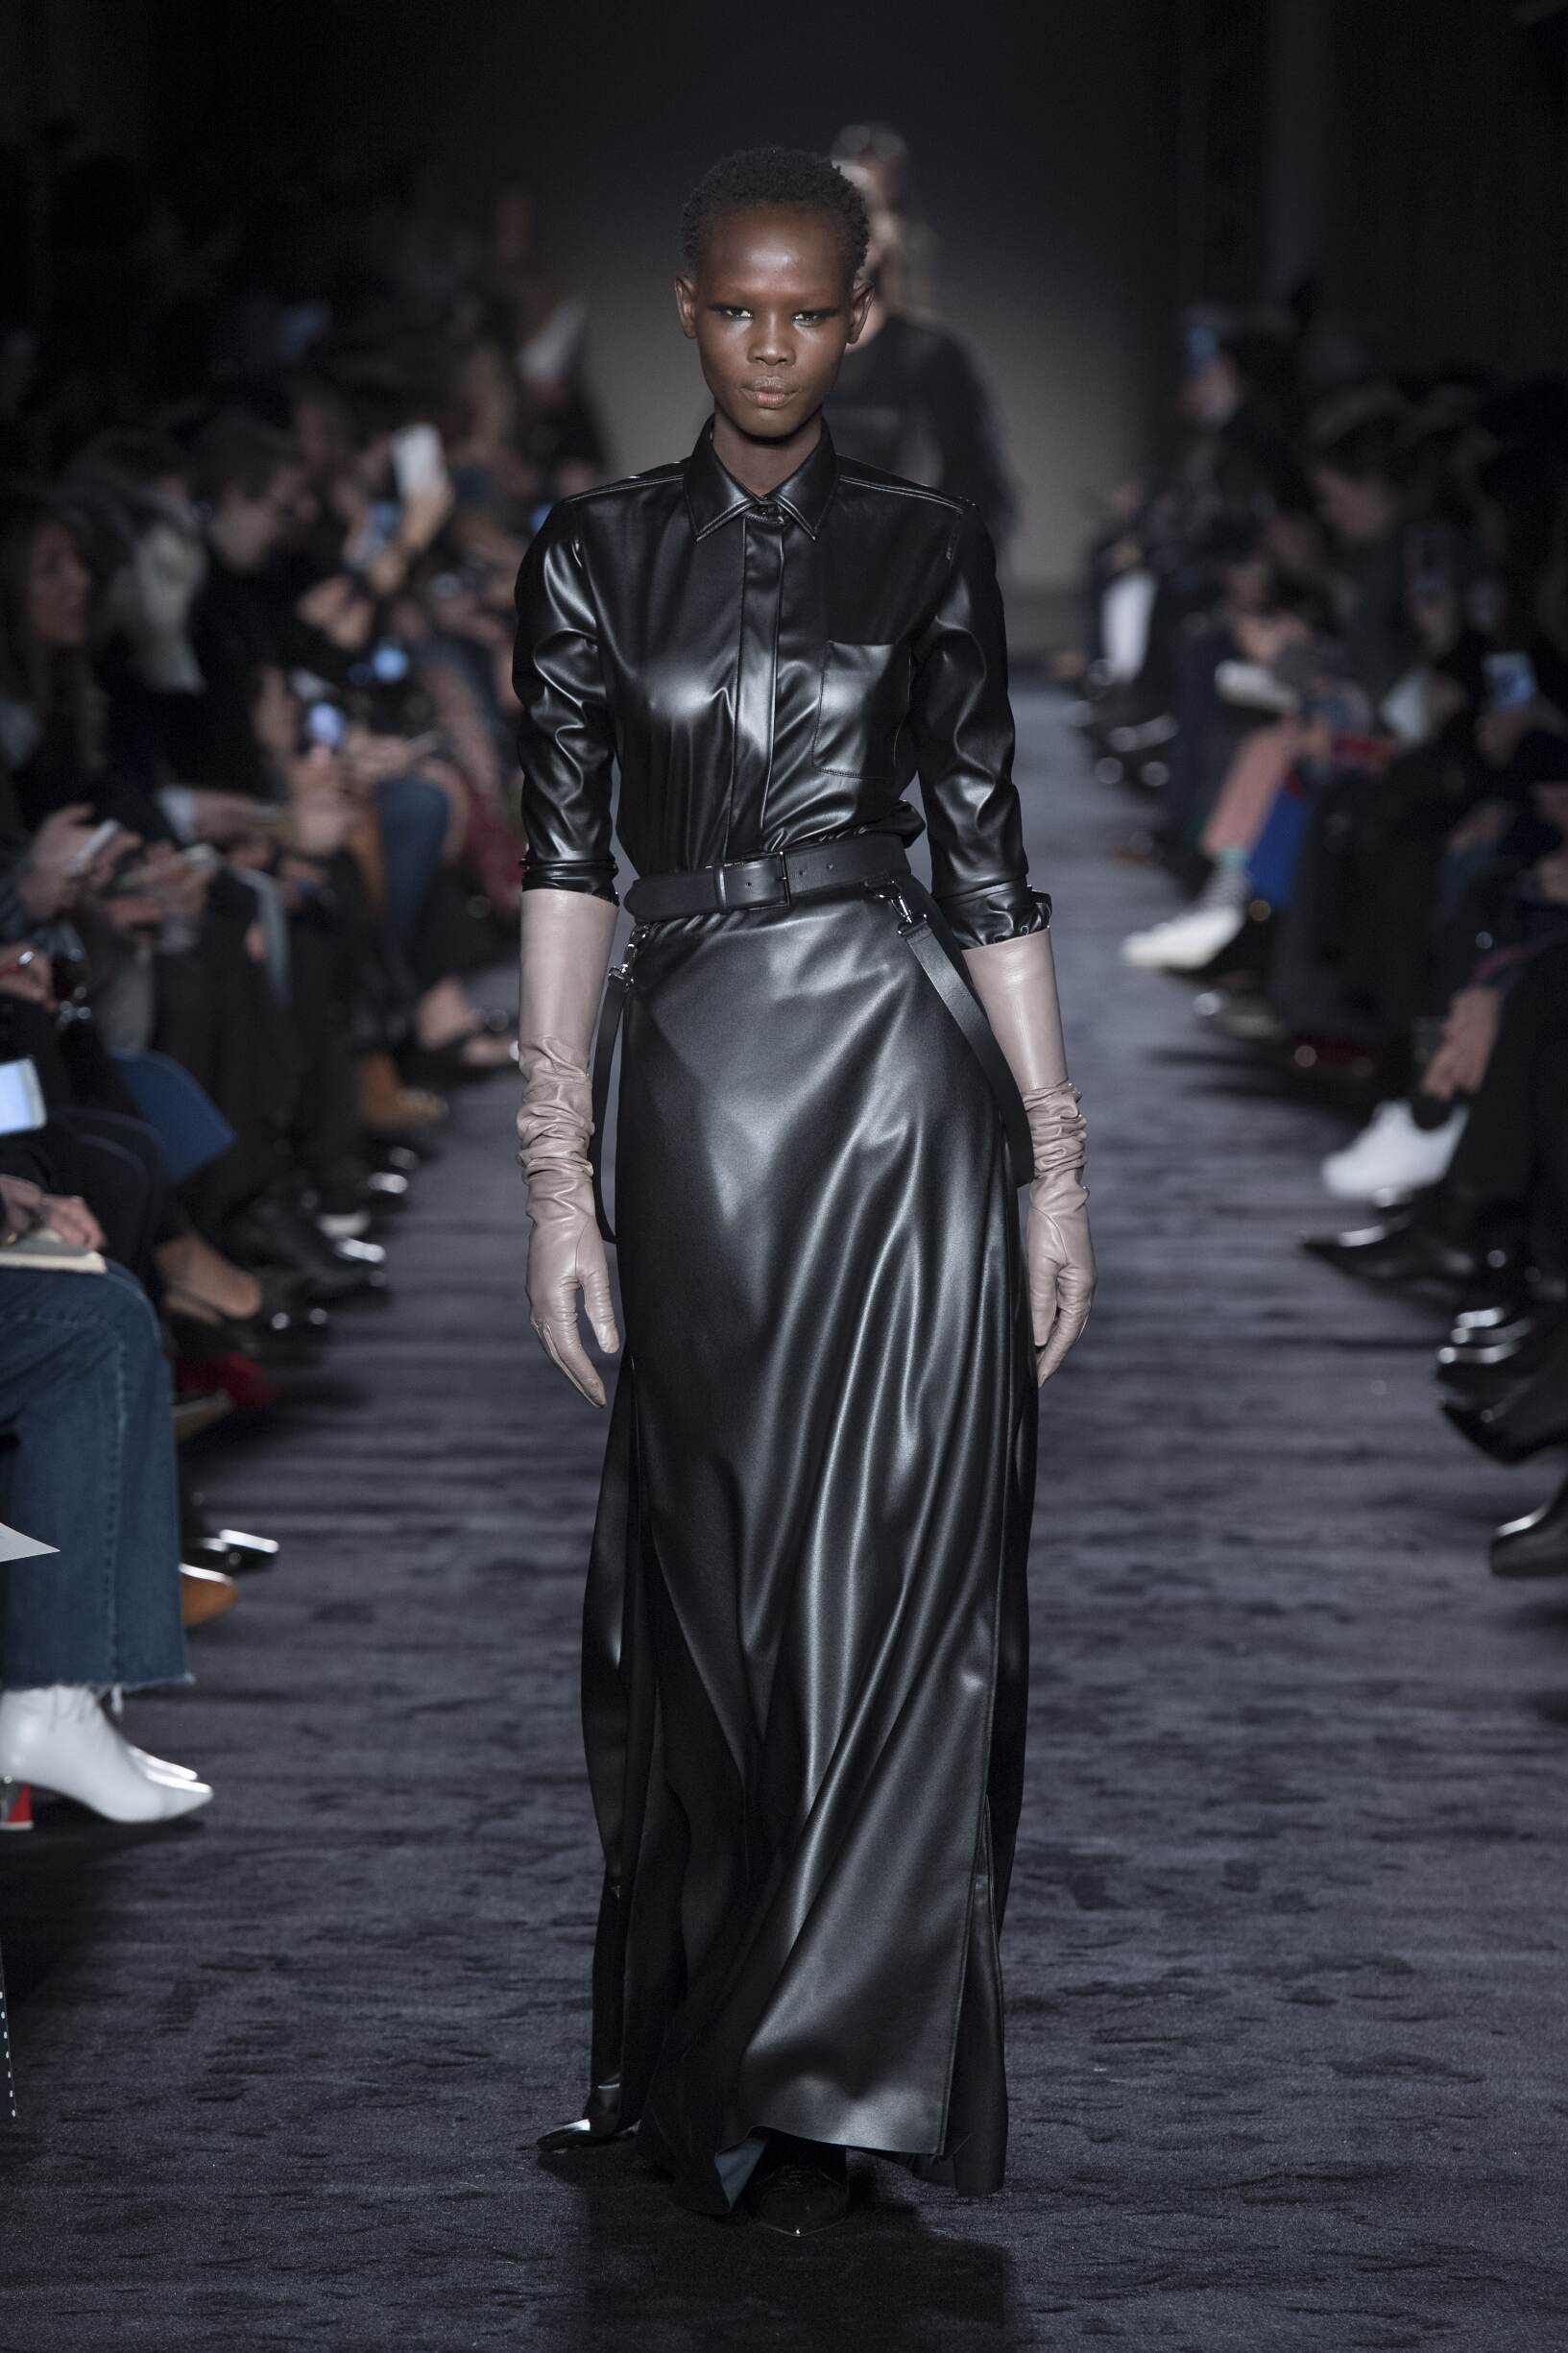 Fall 2018-19 Womenswear Max Mara